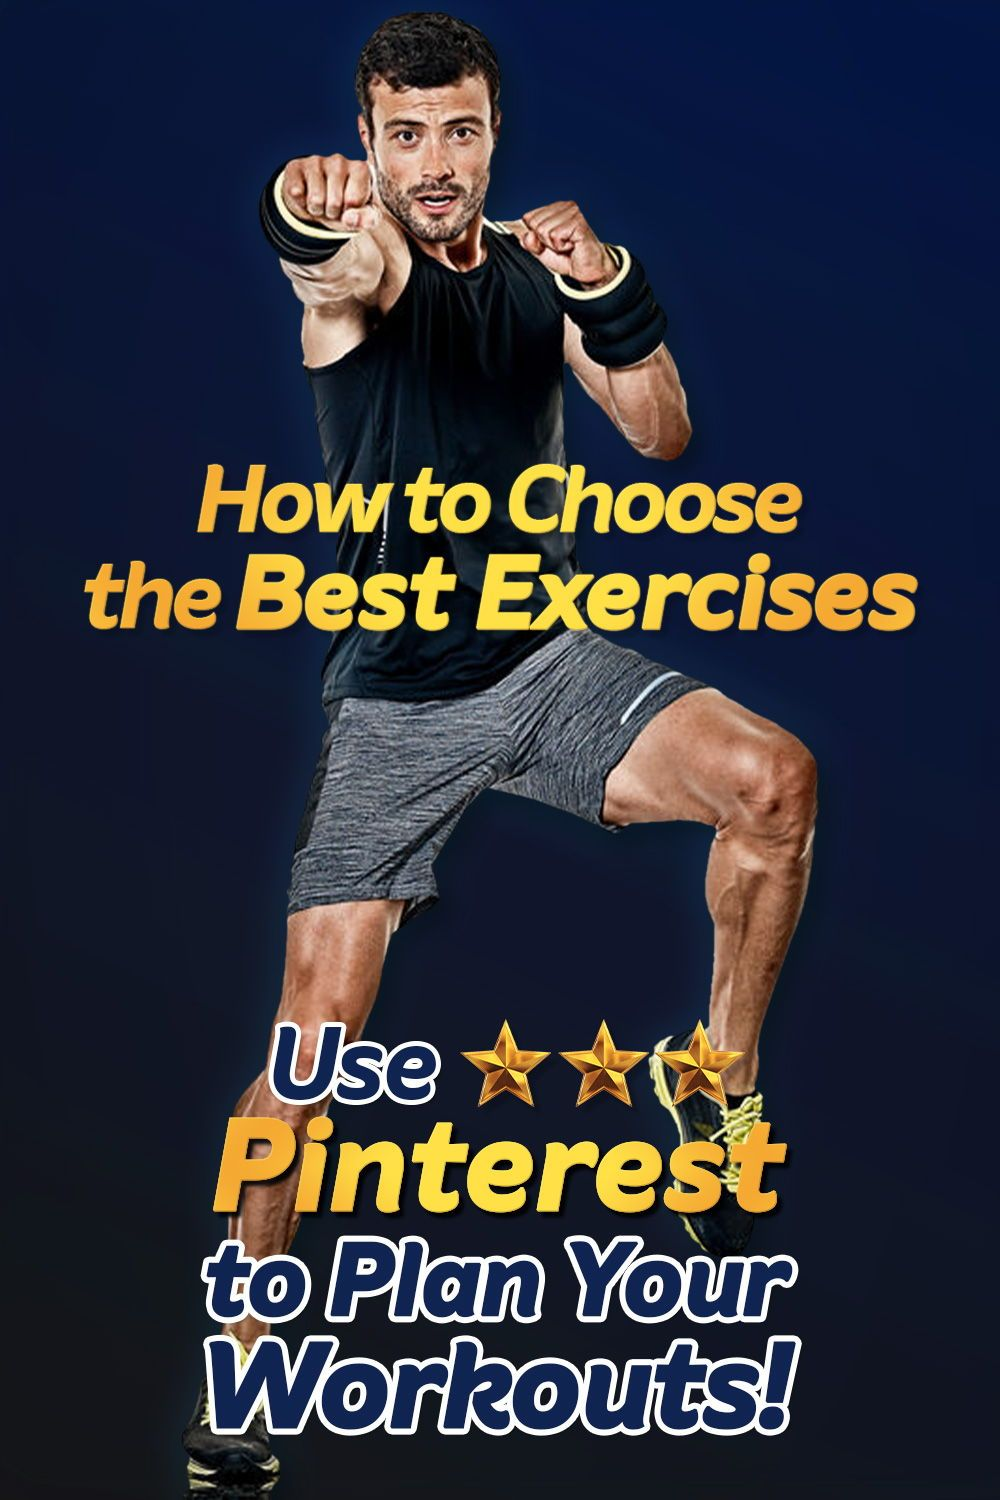 Be strategic, and plan your workouts smartly ahead of time. The Pinterest discovery engine makes it...